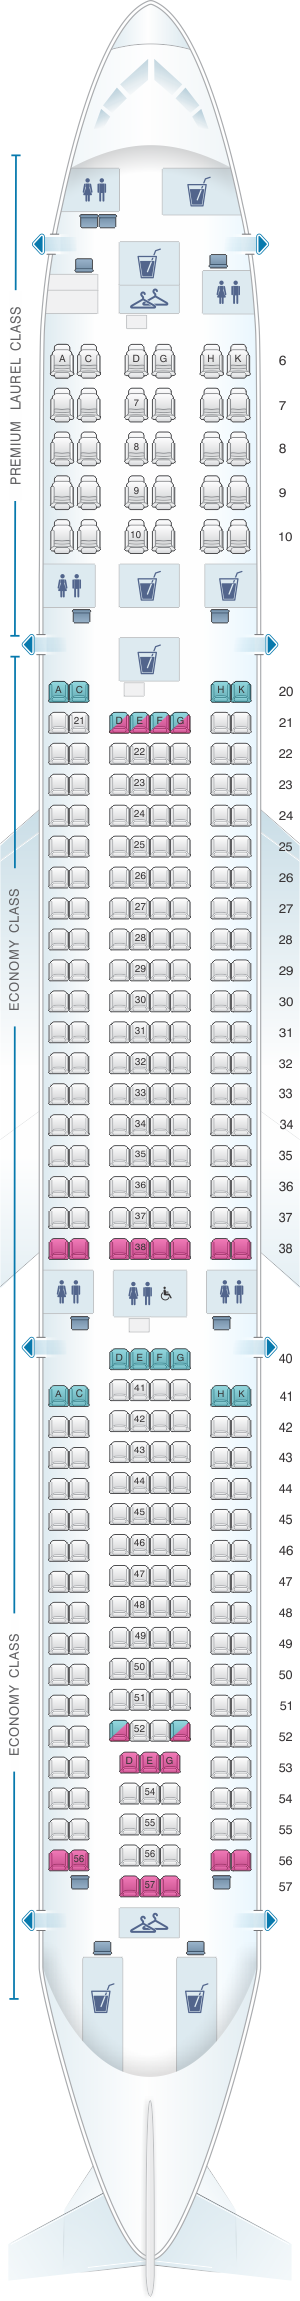 Seat map for EVA Air Airbus A330 300